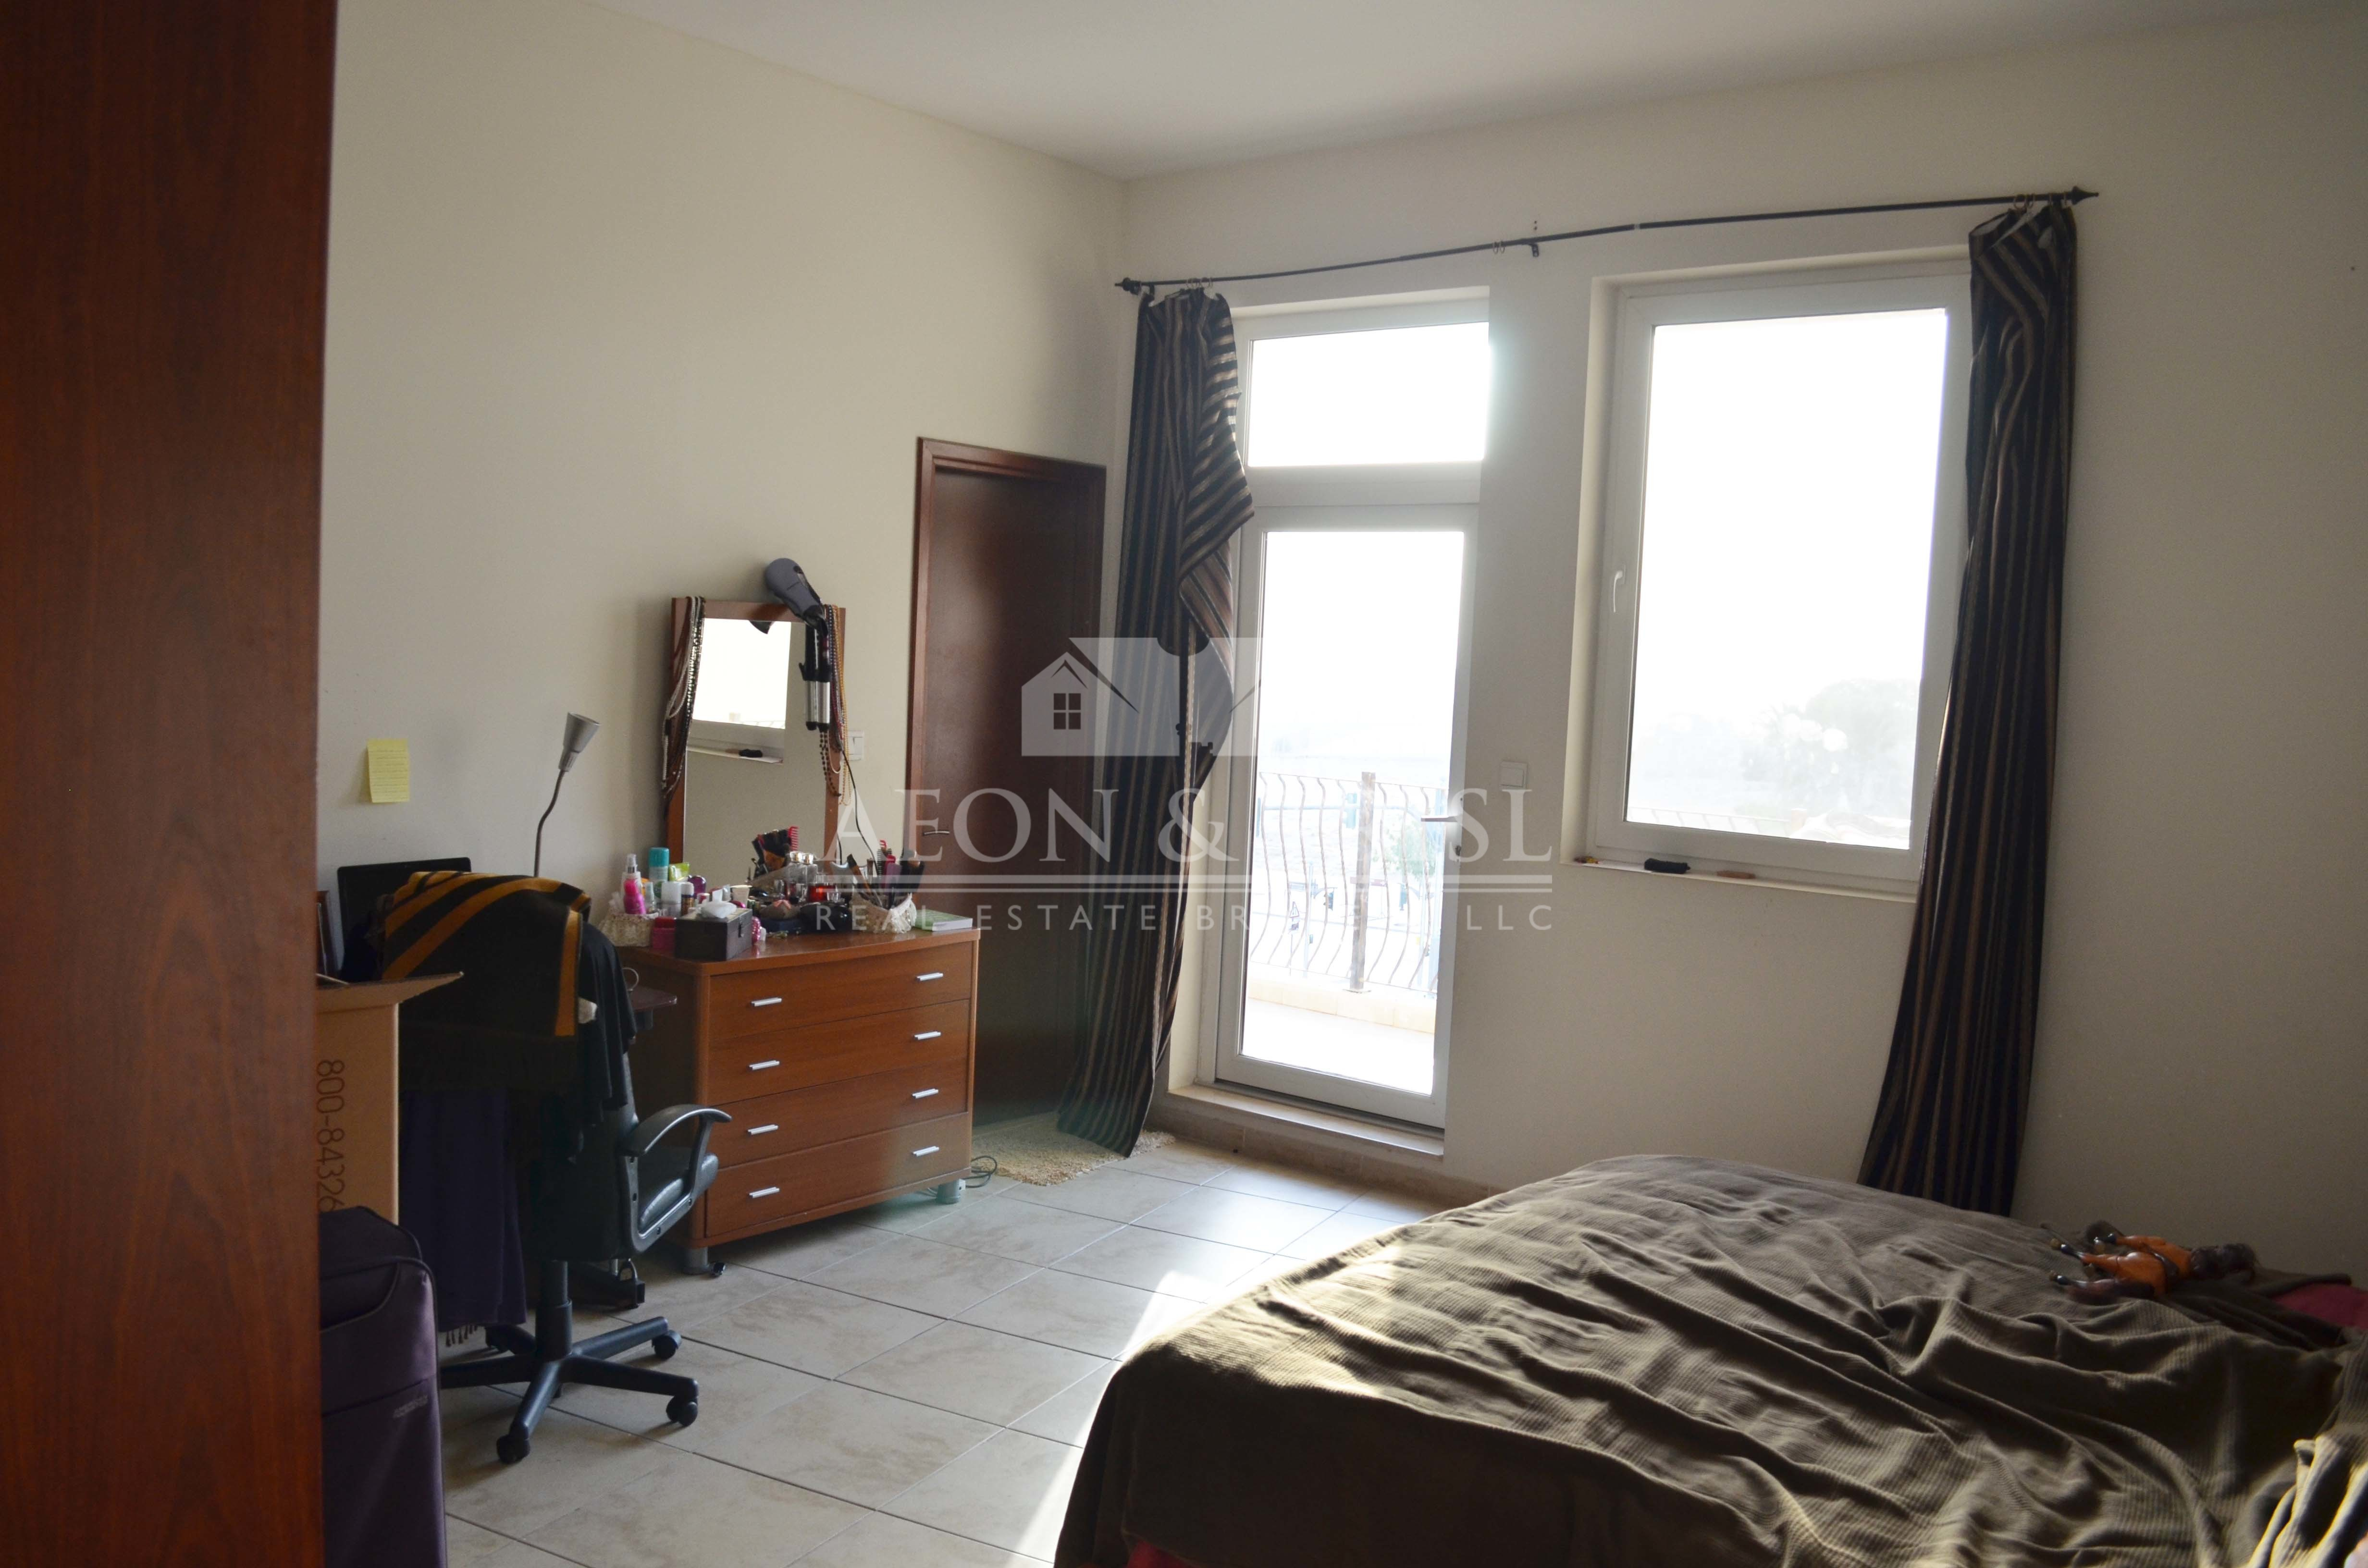 2 Bed with laundry and store | Sunset View